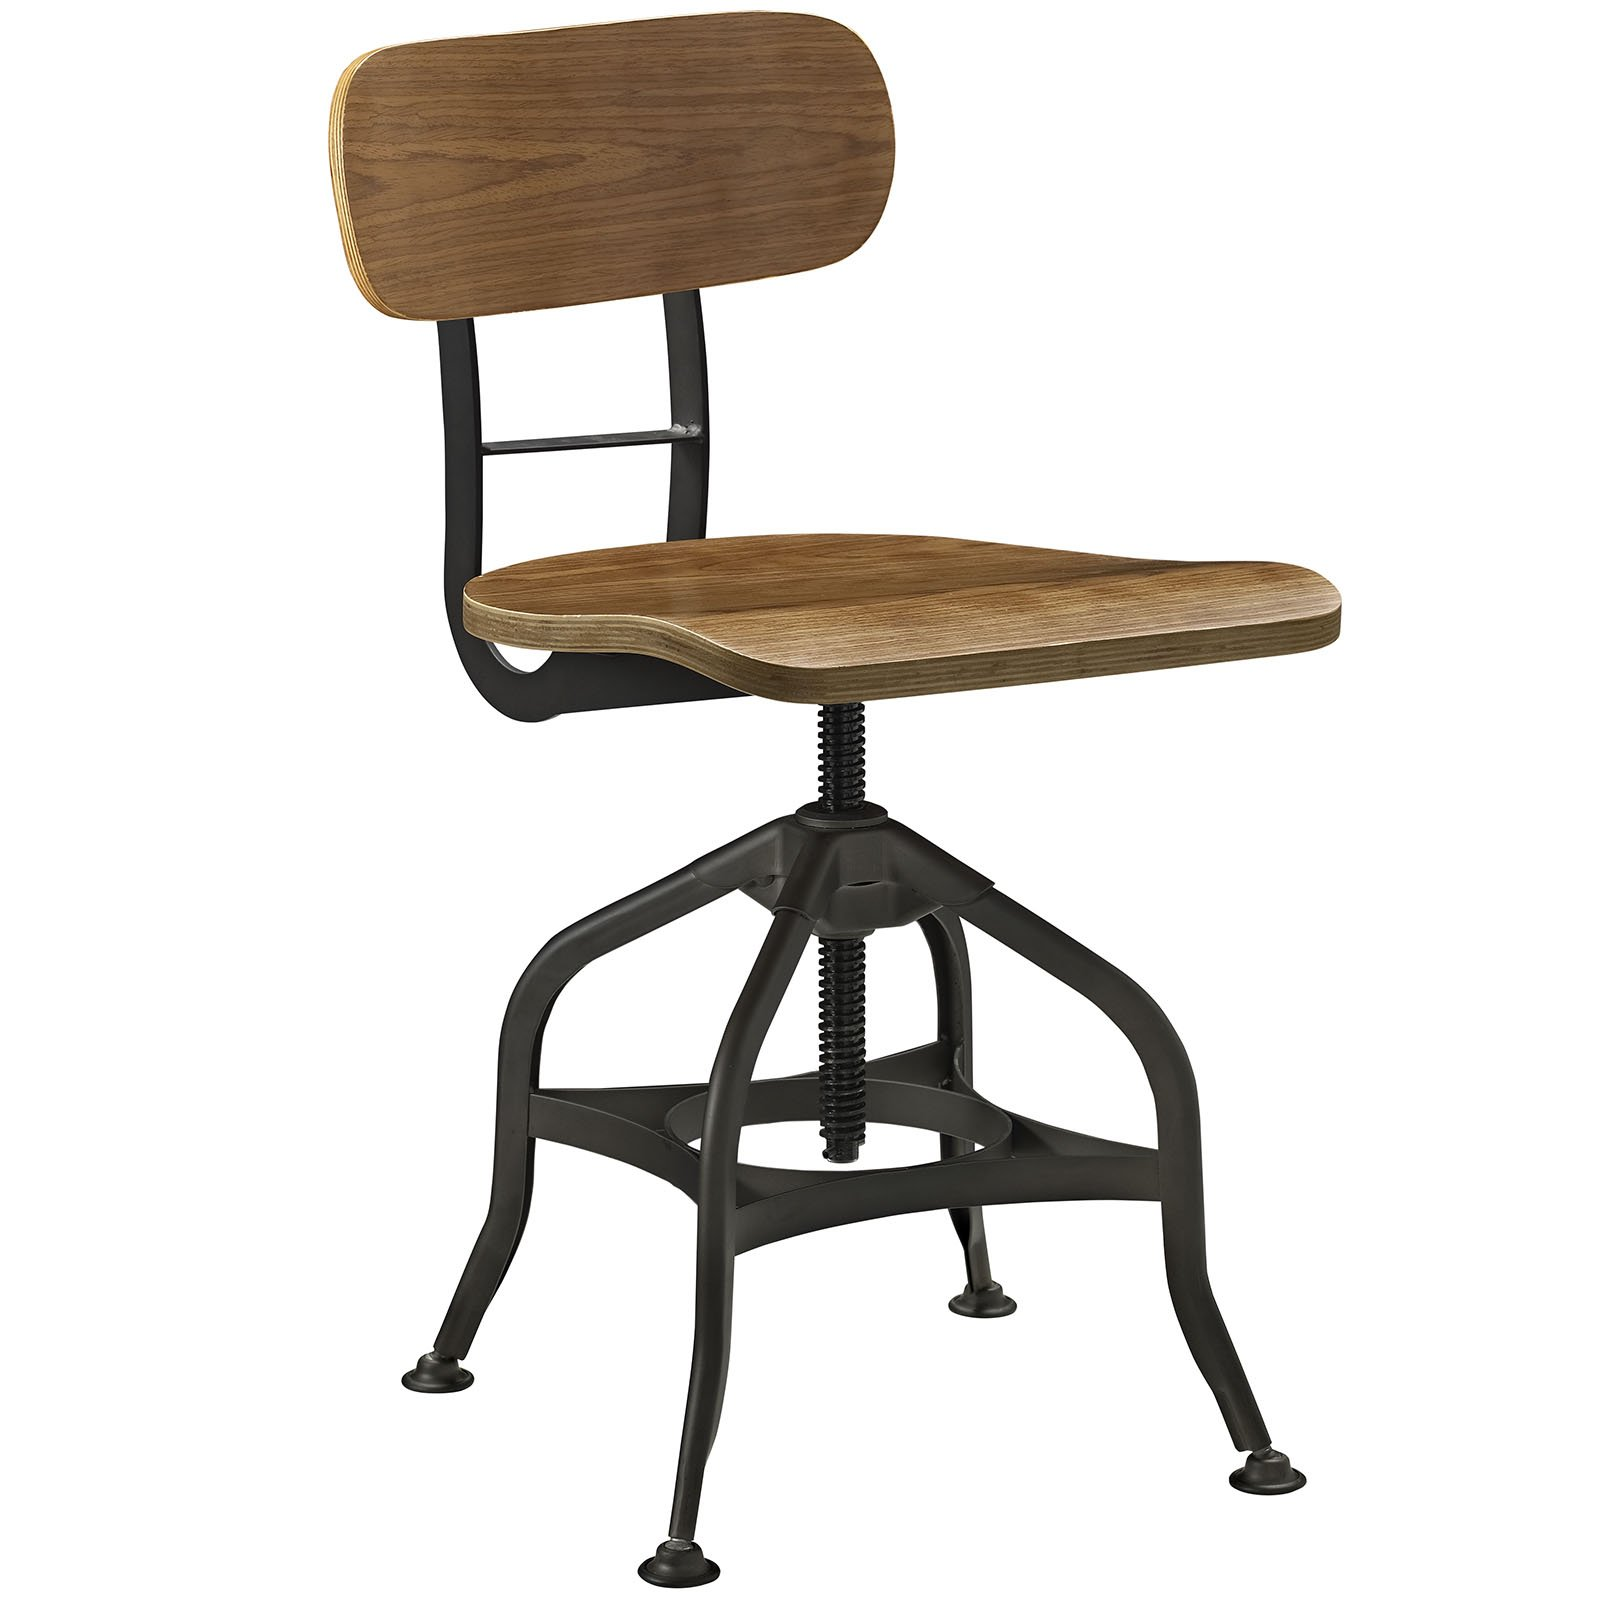 Modway Mark Industrial Dining Stool, Brown